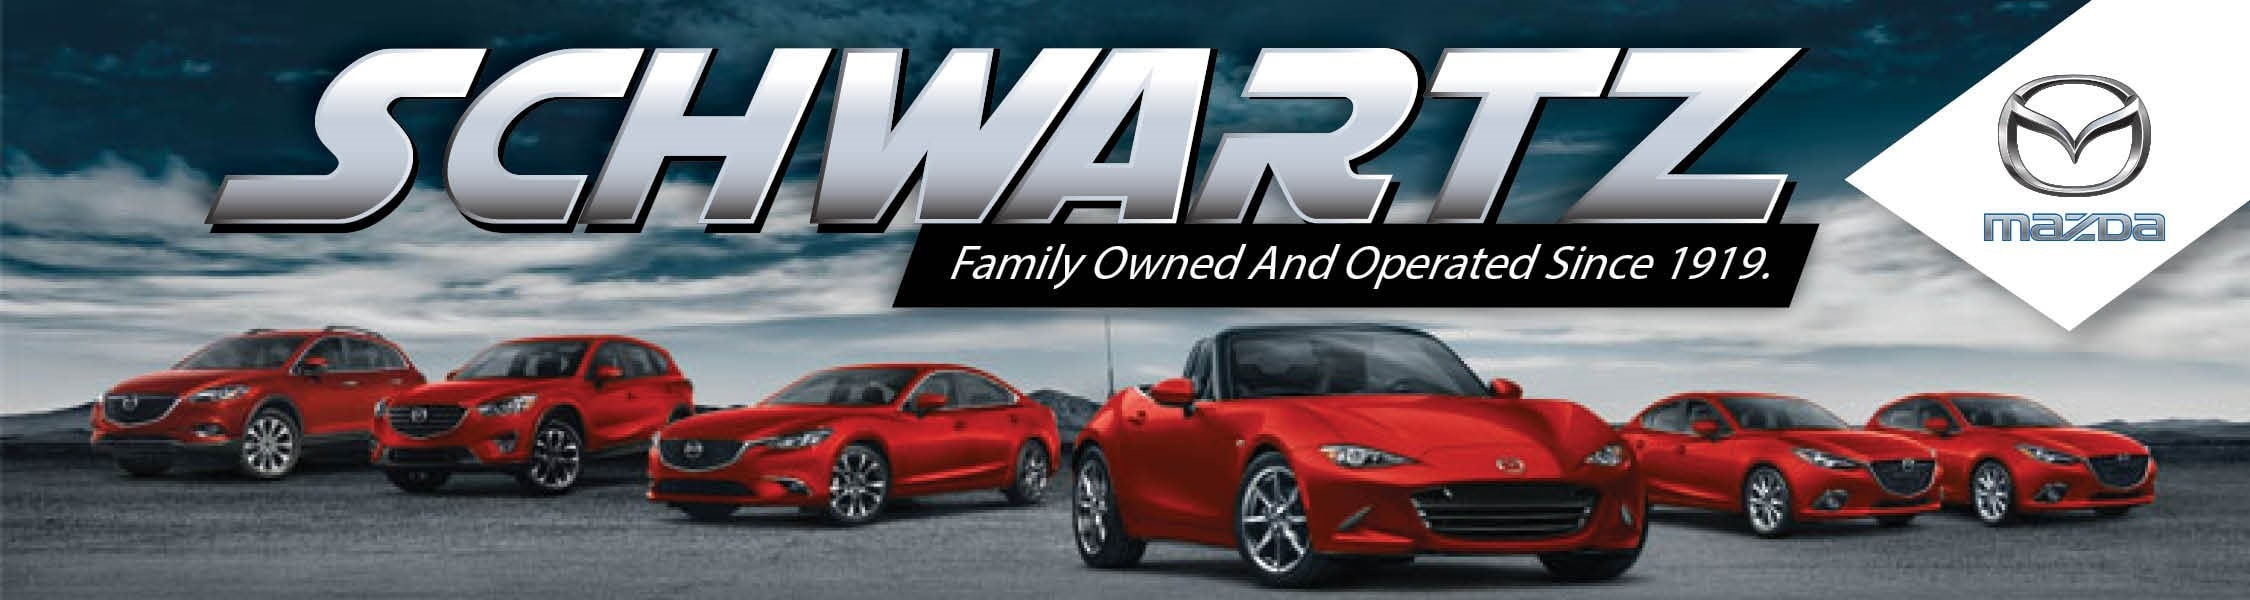 Schwartz Mazda New Mazda Dealership In Shrewsbury NJ - Mazda dealerships in maine